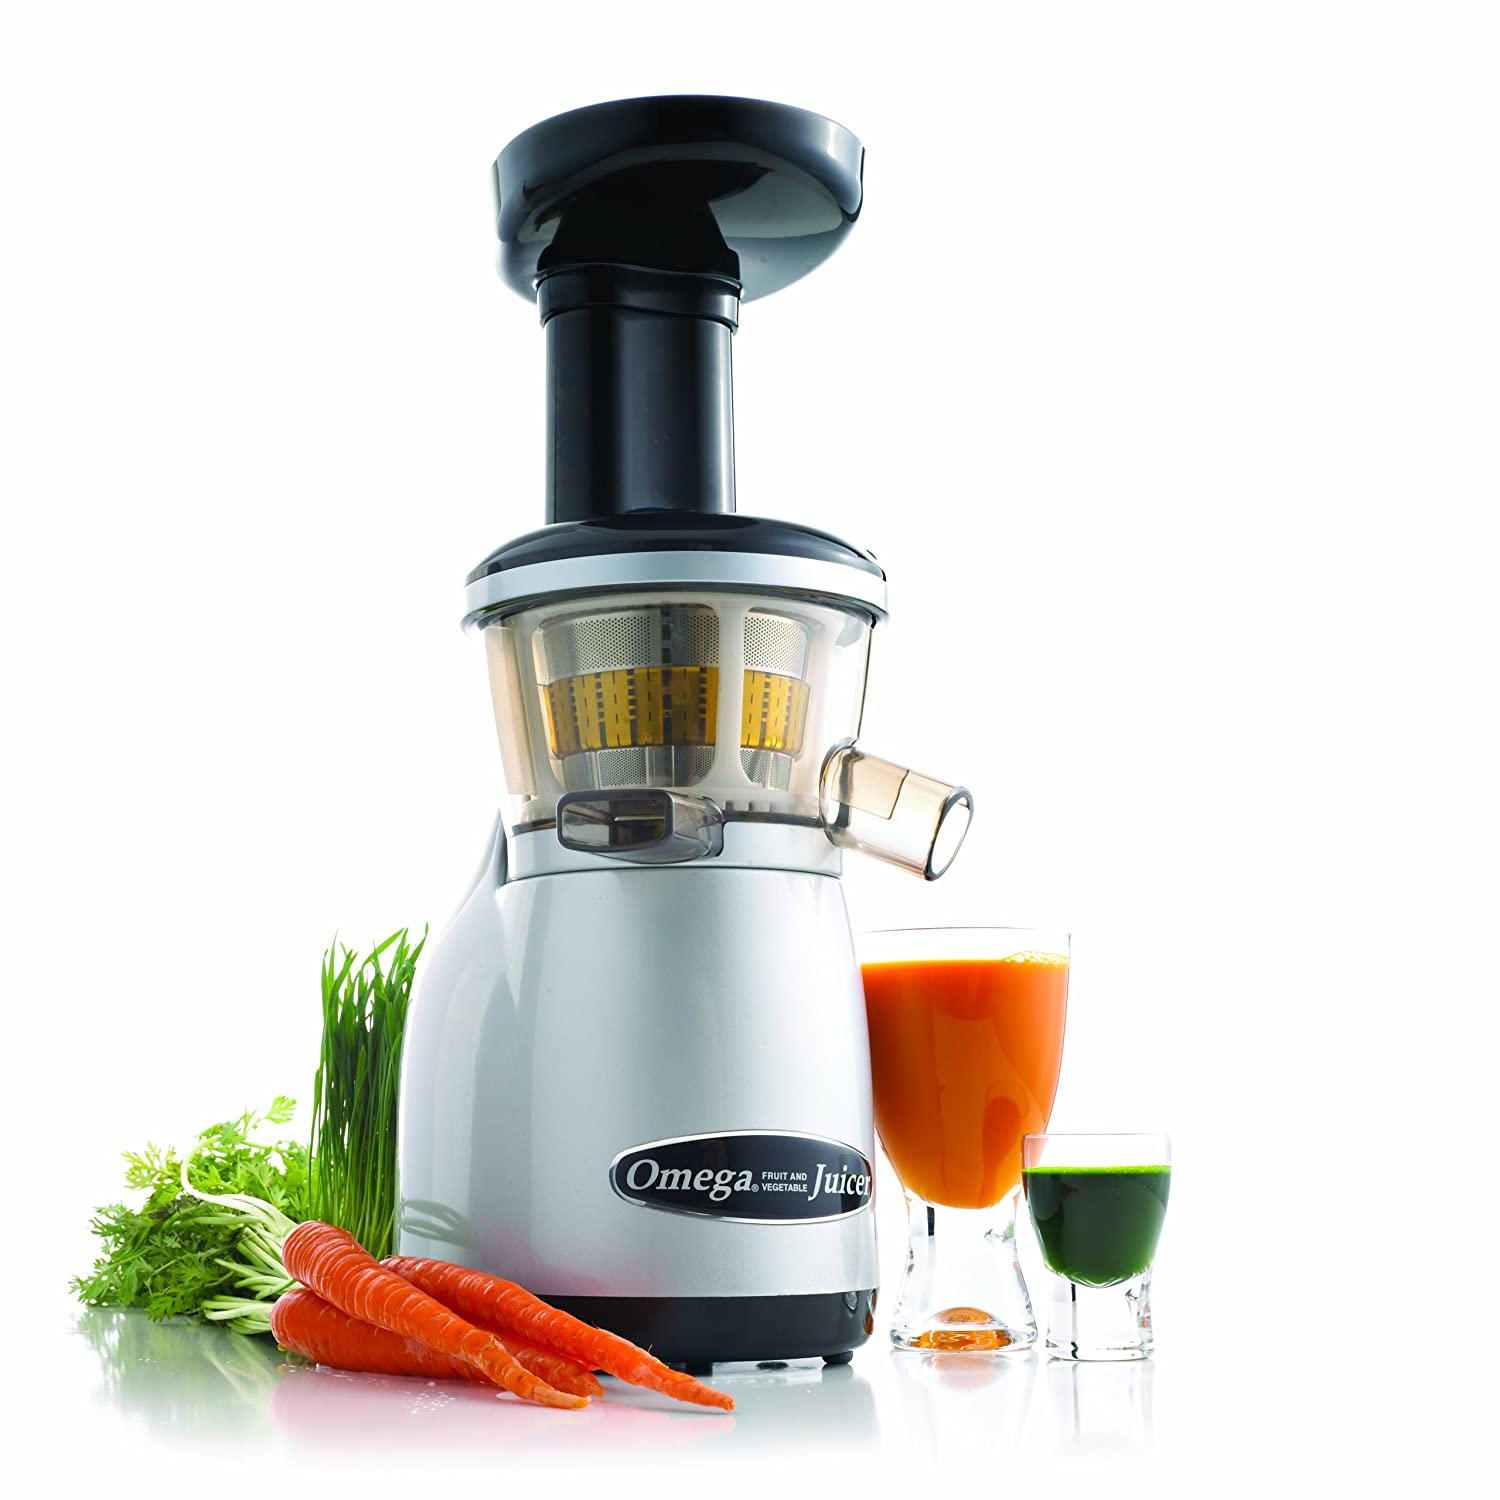 Omega Juicers VRT350 Vertical Slow Masticating Juicer Makes Continuous Fresh Fruit and Vegetable Juice at 80 Revolutions per Minute Features Compact Design Automatic Pulp Ejection, 150-Watt, Silver